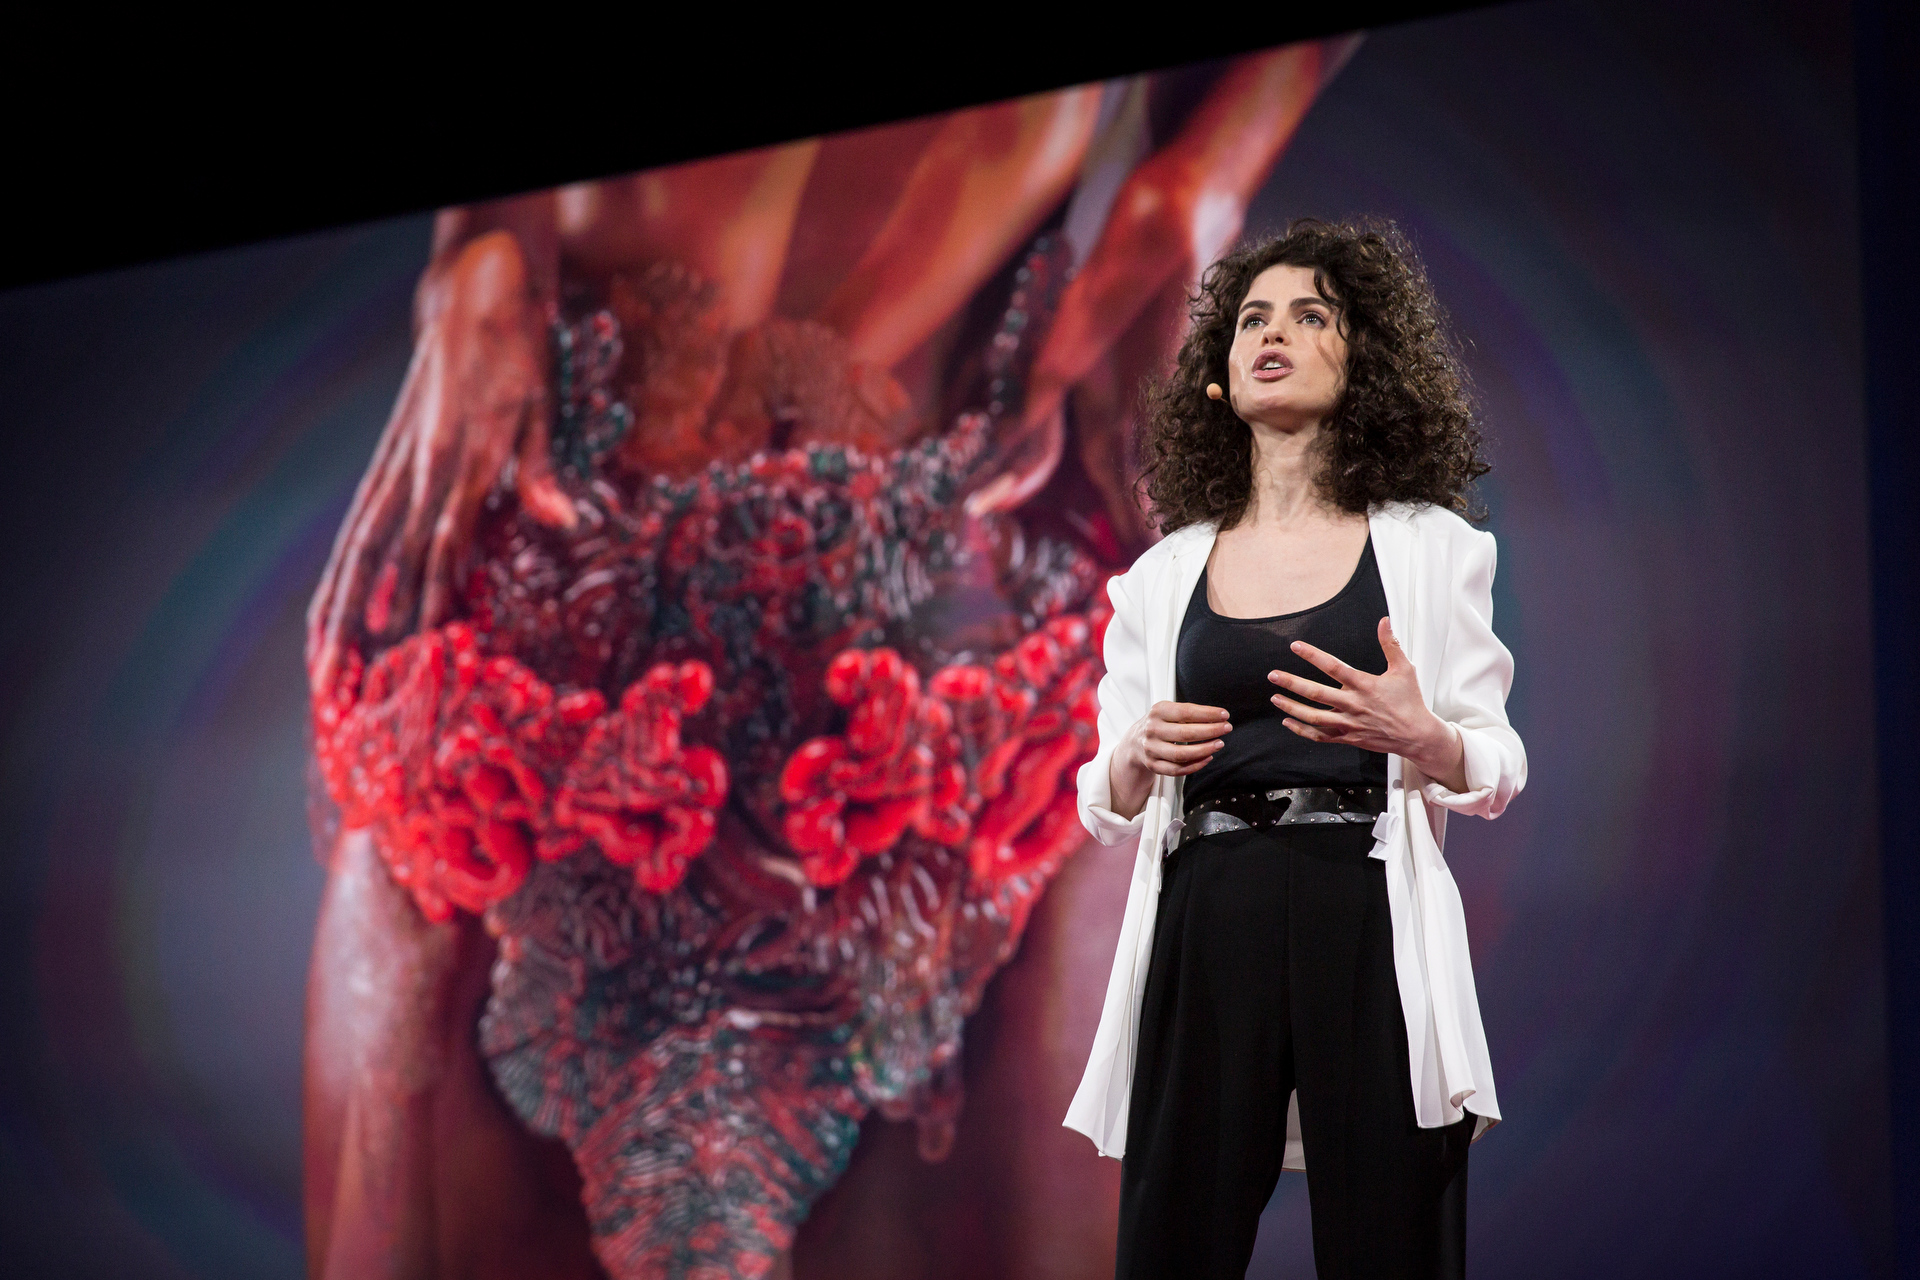 """Neri Oxman wows the audience with the """"first wearable digestive system."""" Read more about her talk. Photo: Bret Hartman/TED http://blog.ted.com/creative-ignition-a-recap-of-the-fiery-talks-in-session-10-of-ted2015/"""